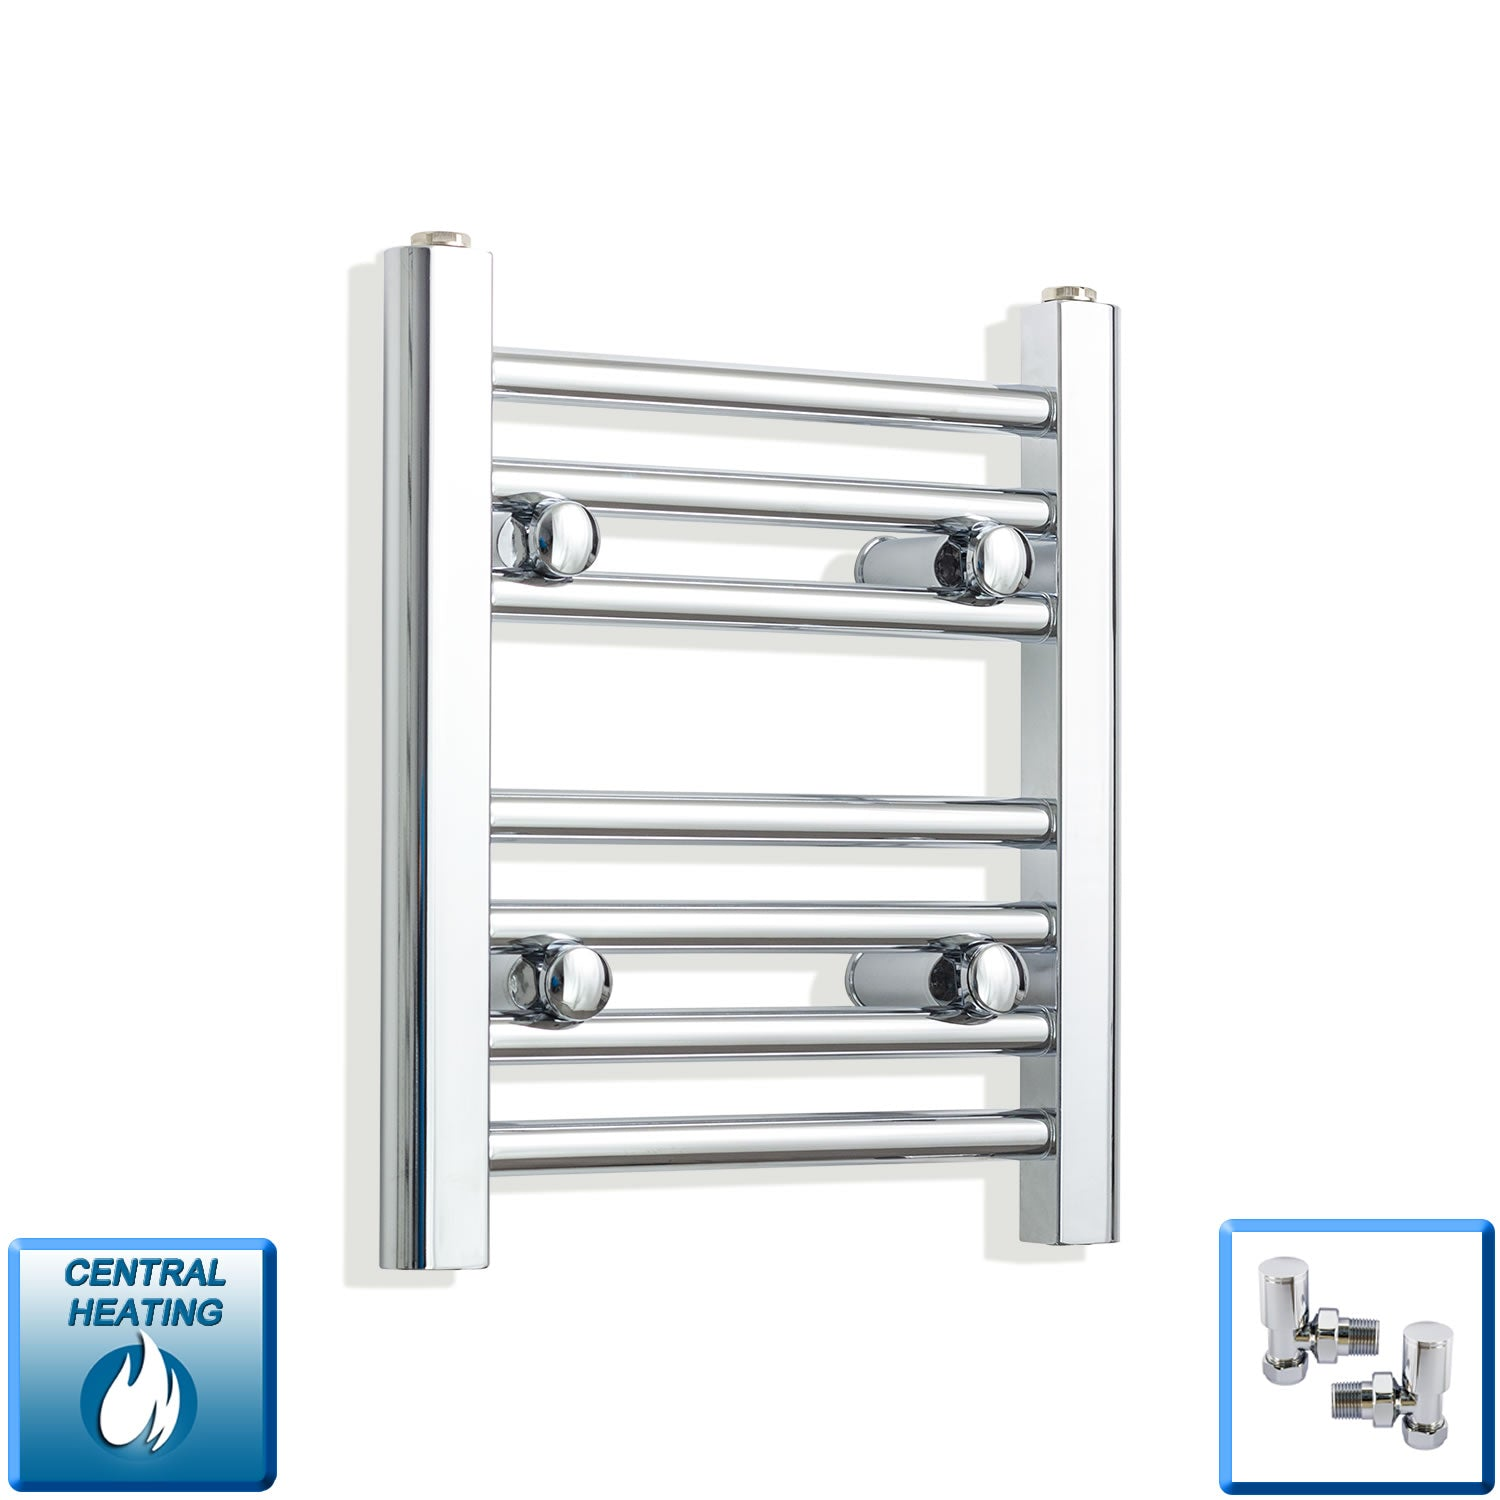 400mm Wide 400mm High Chrome Towel Rail Radiator With Angled Valve